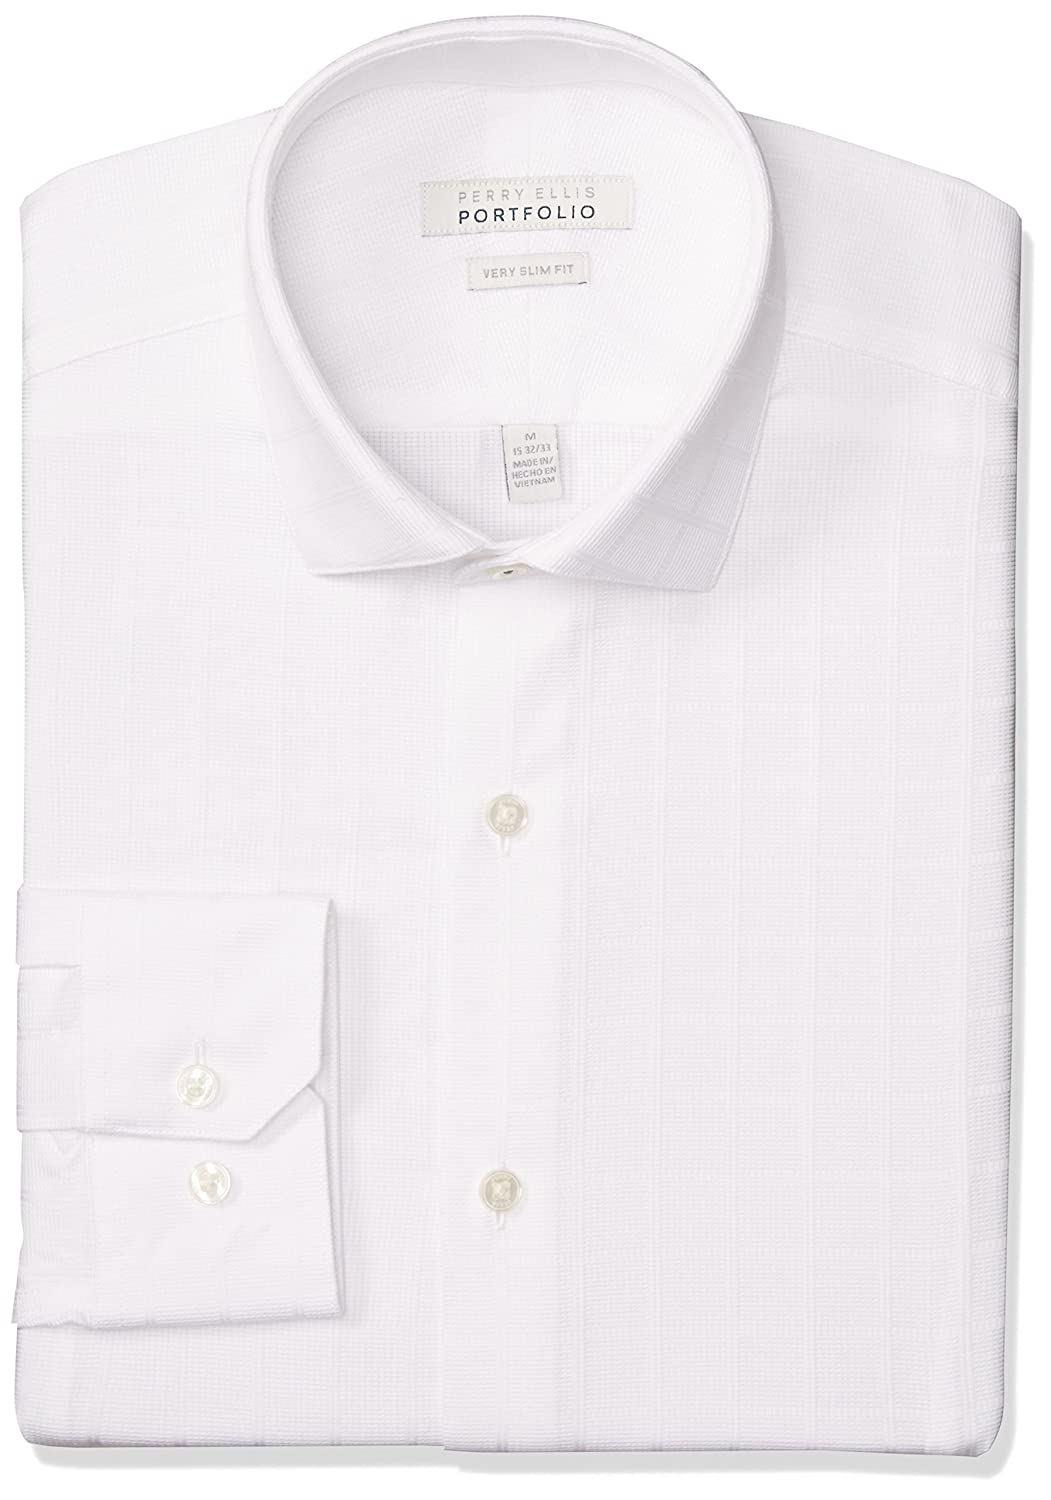 Perry Ellis Men's Very Slim Fit Performance White Dobby Dress Shirt at  Amazon Men's Clothing store: